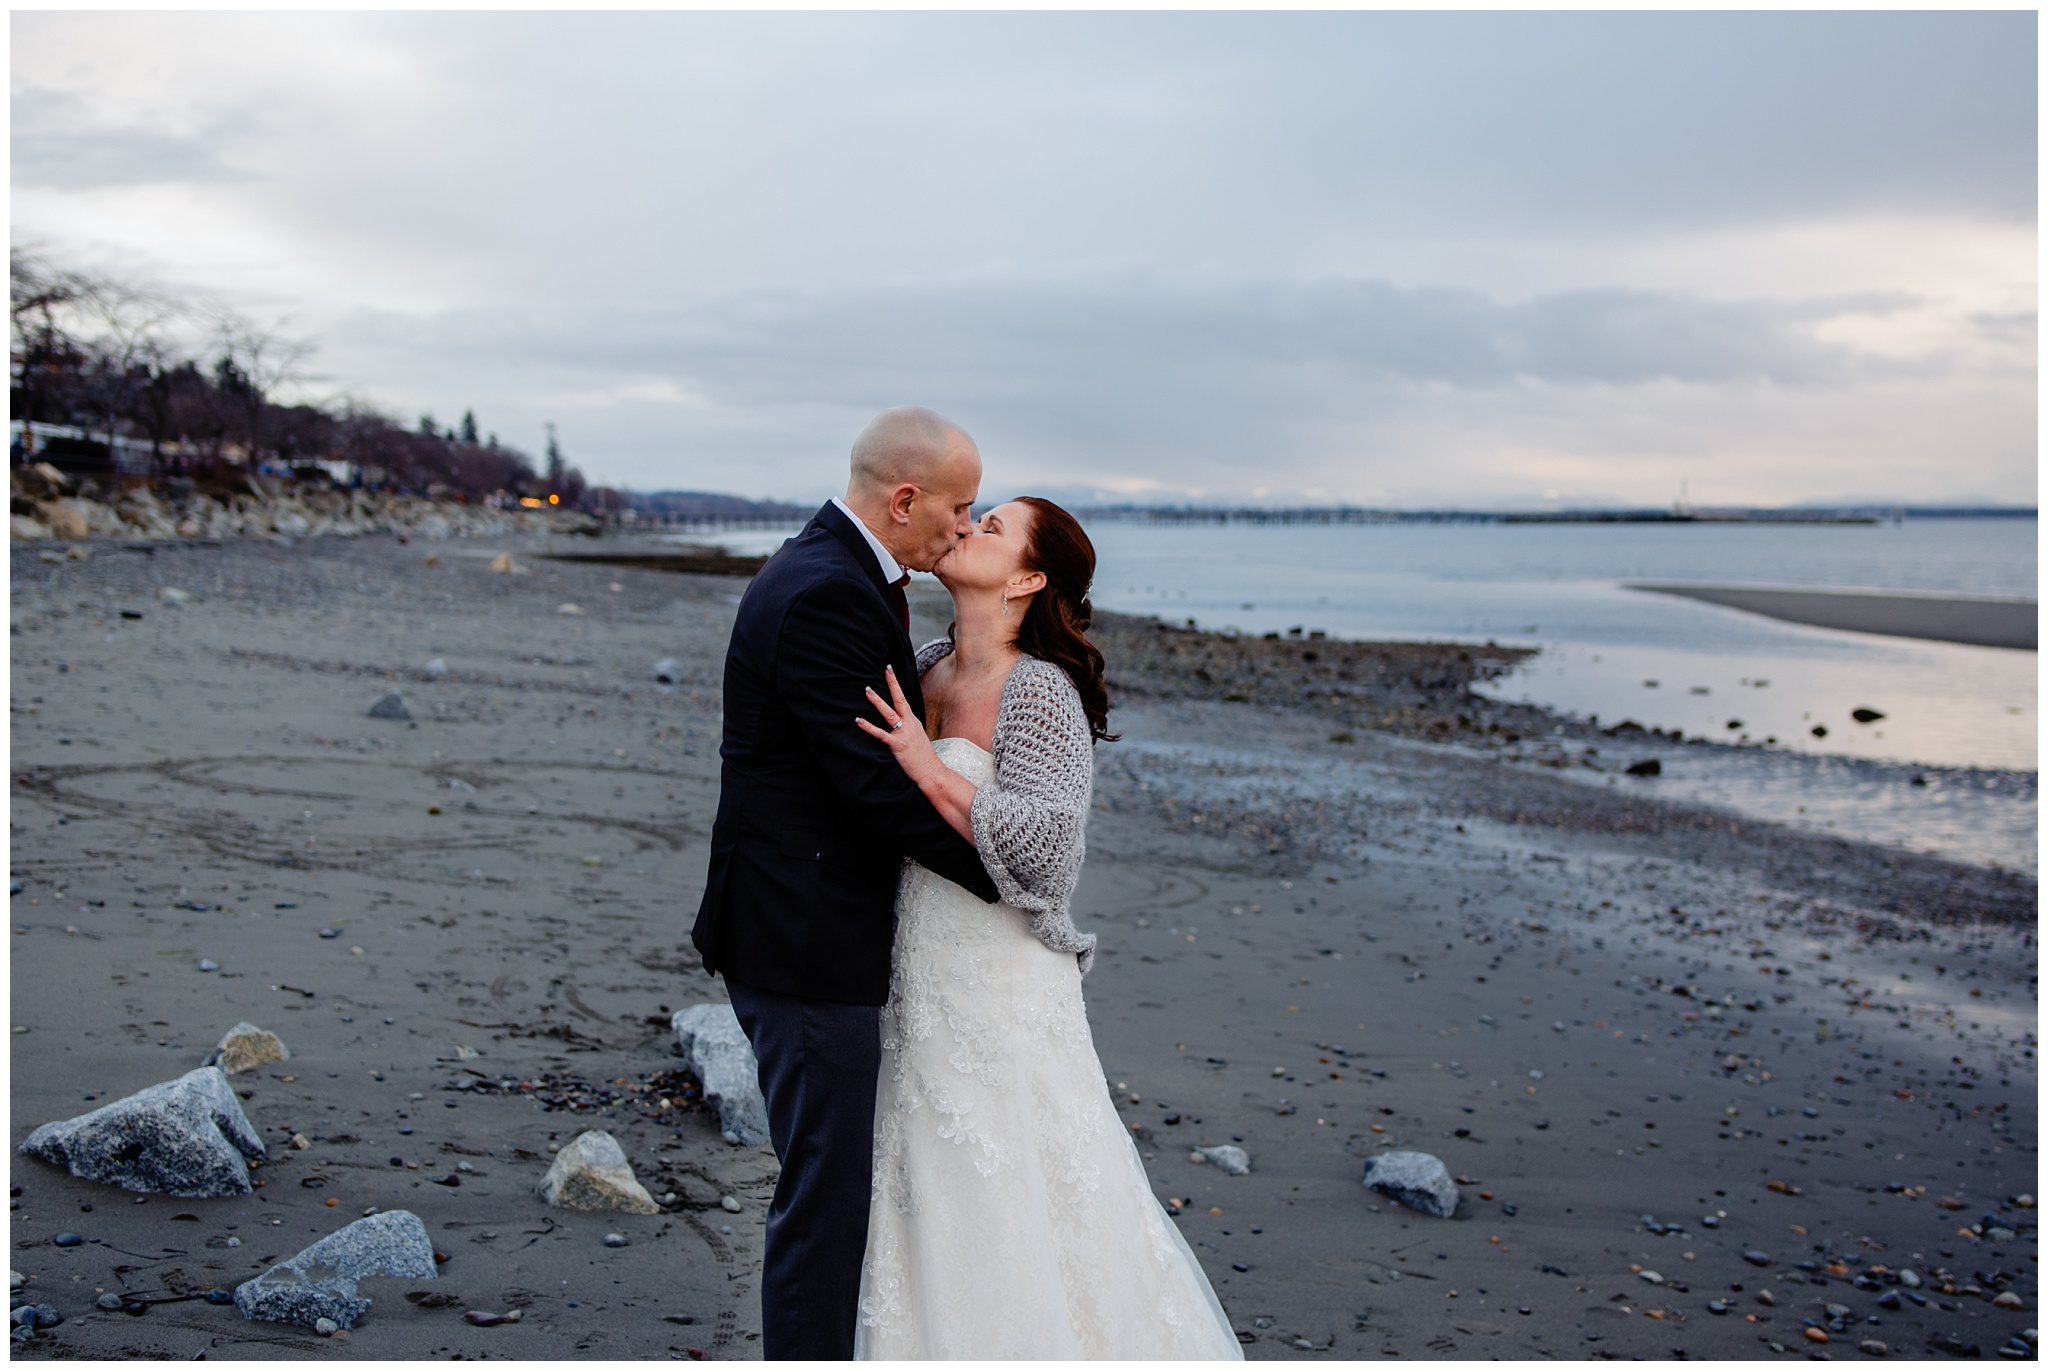 White Rock Intimate Wedding 5 Star Catering Venue Surrey BC Middle Aged Couple_0014.jpg